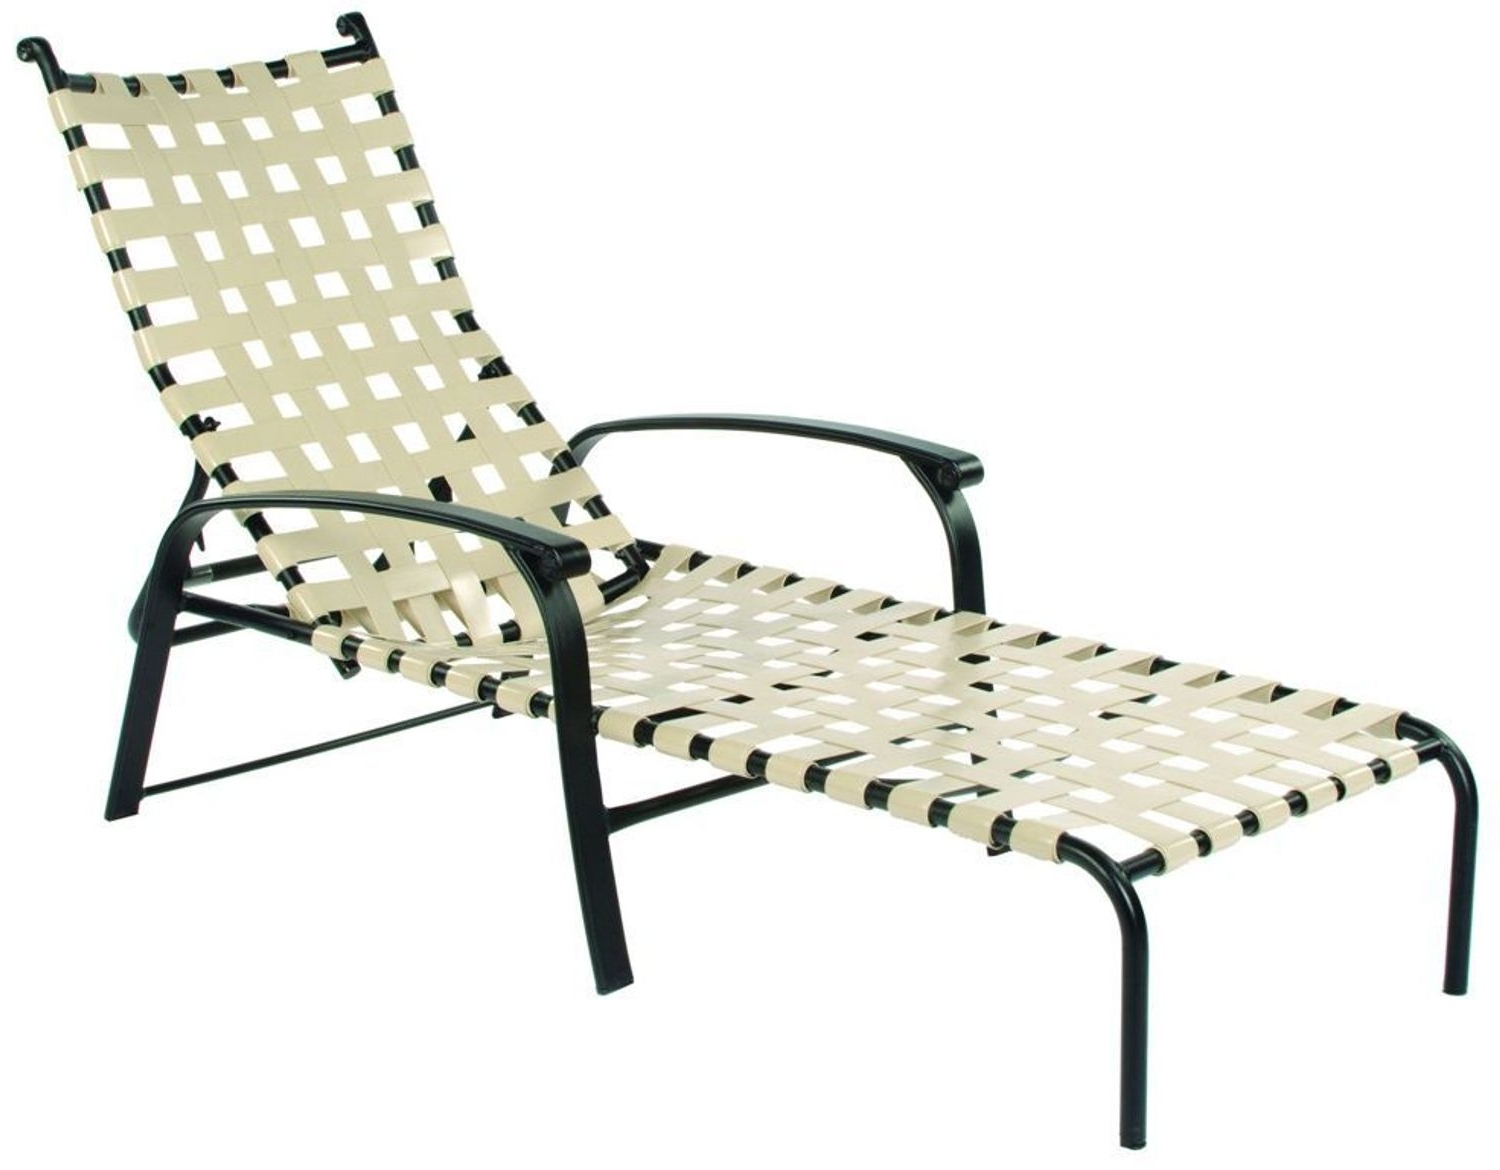 Home Outdoor Decoration With Regard To Commercial Grade Outdoor Chaise Lounge Chairs (View 14 of 15)